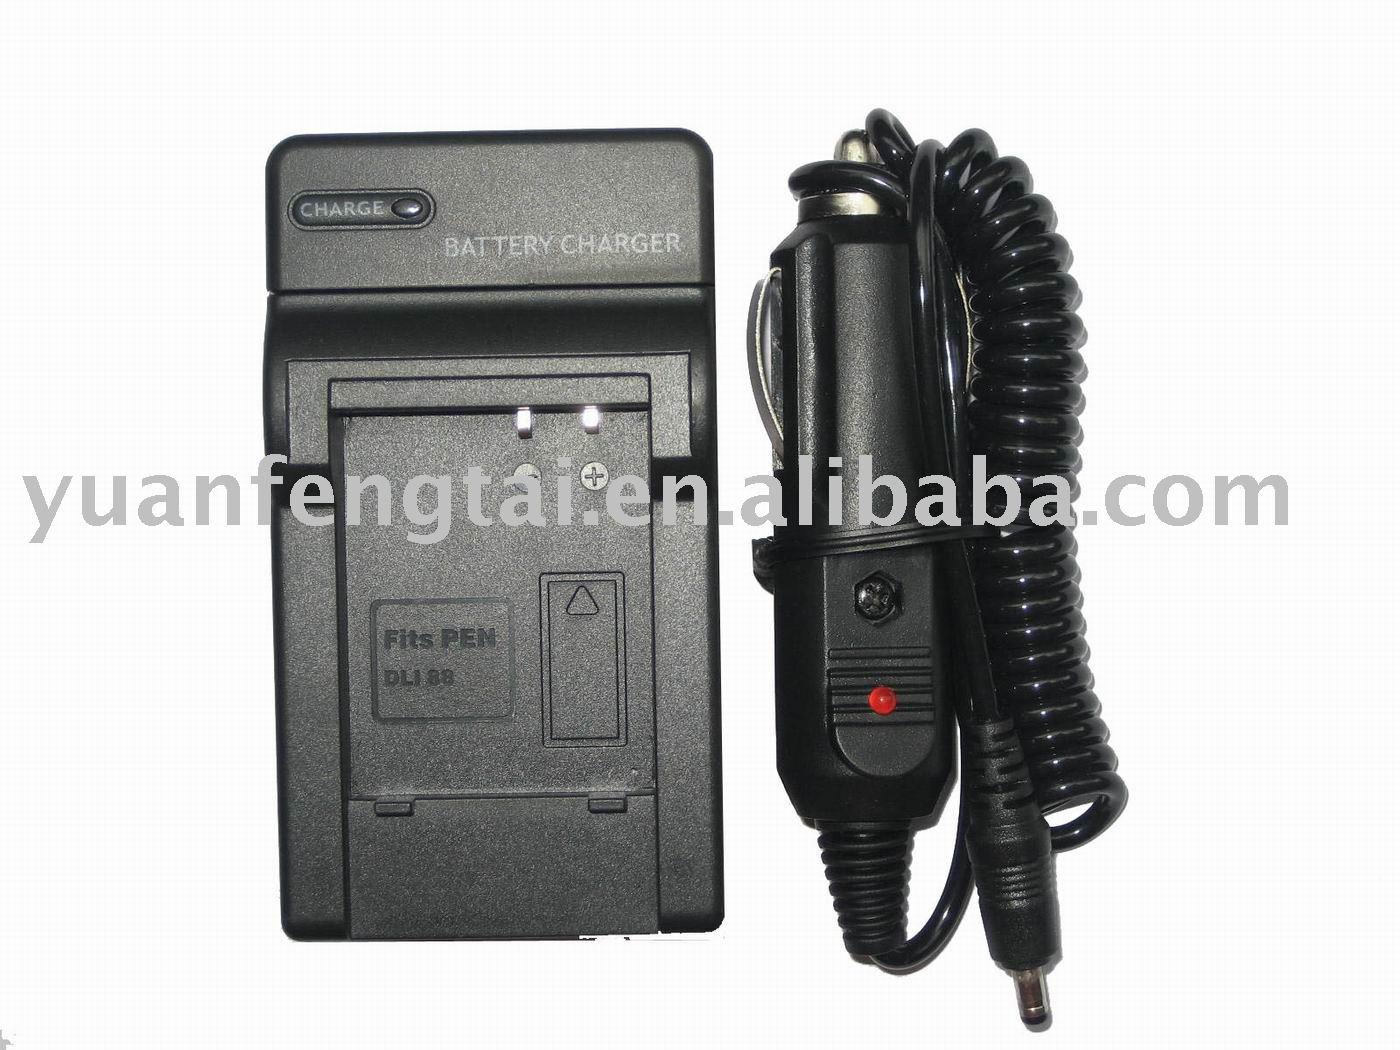 D-Li88 Camera Charger Digital Camera Battery Charger for Pentax D-Li88